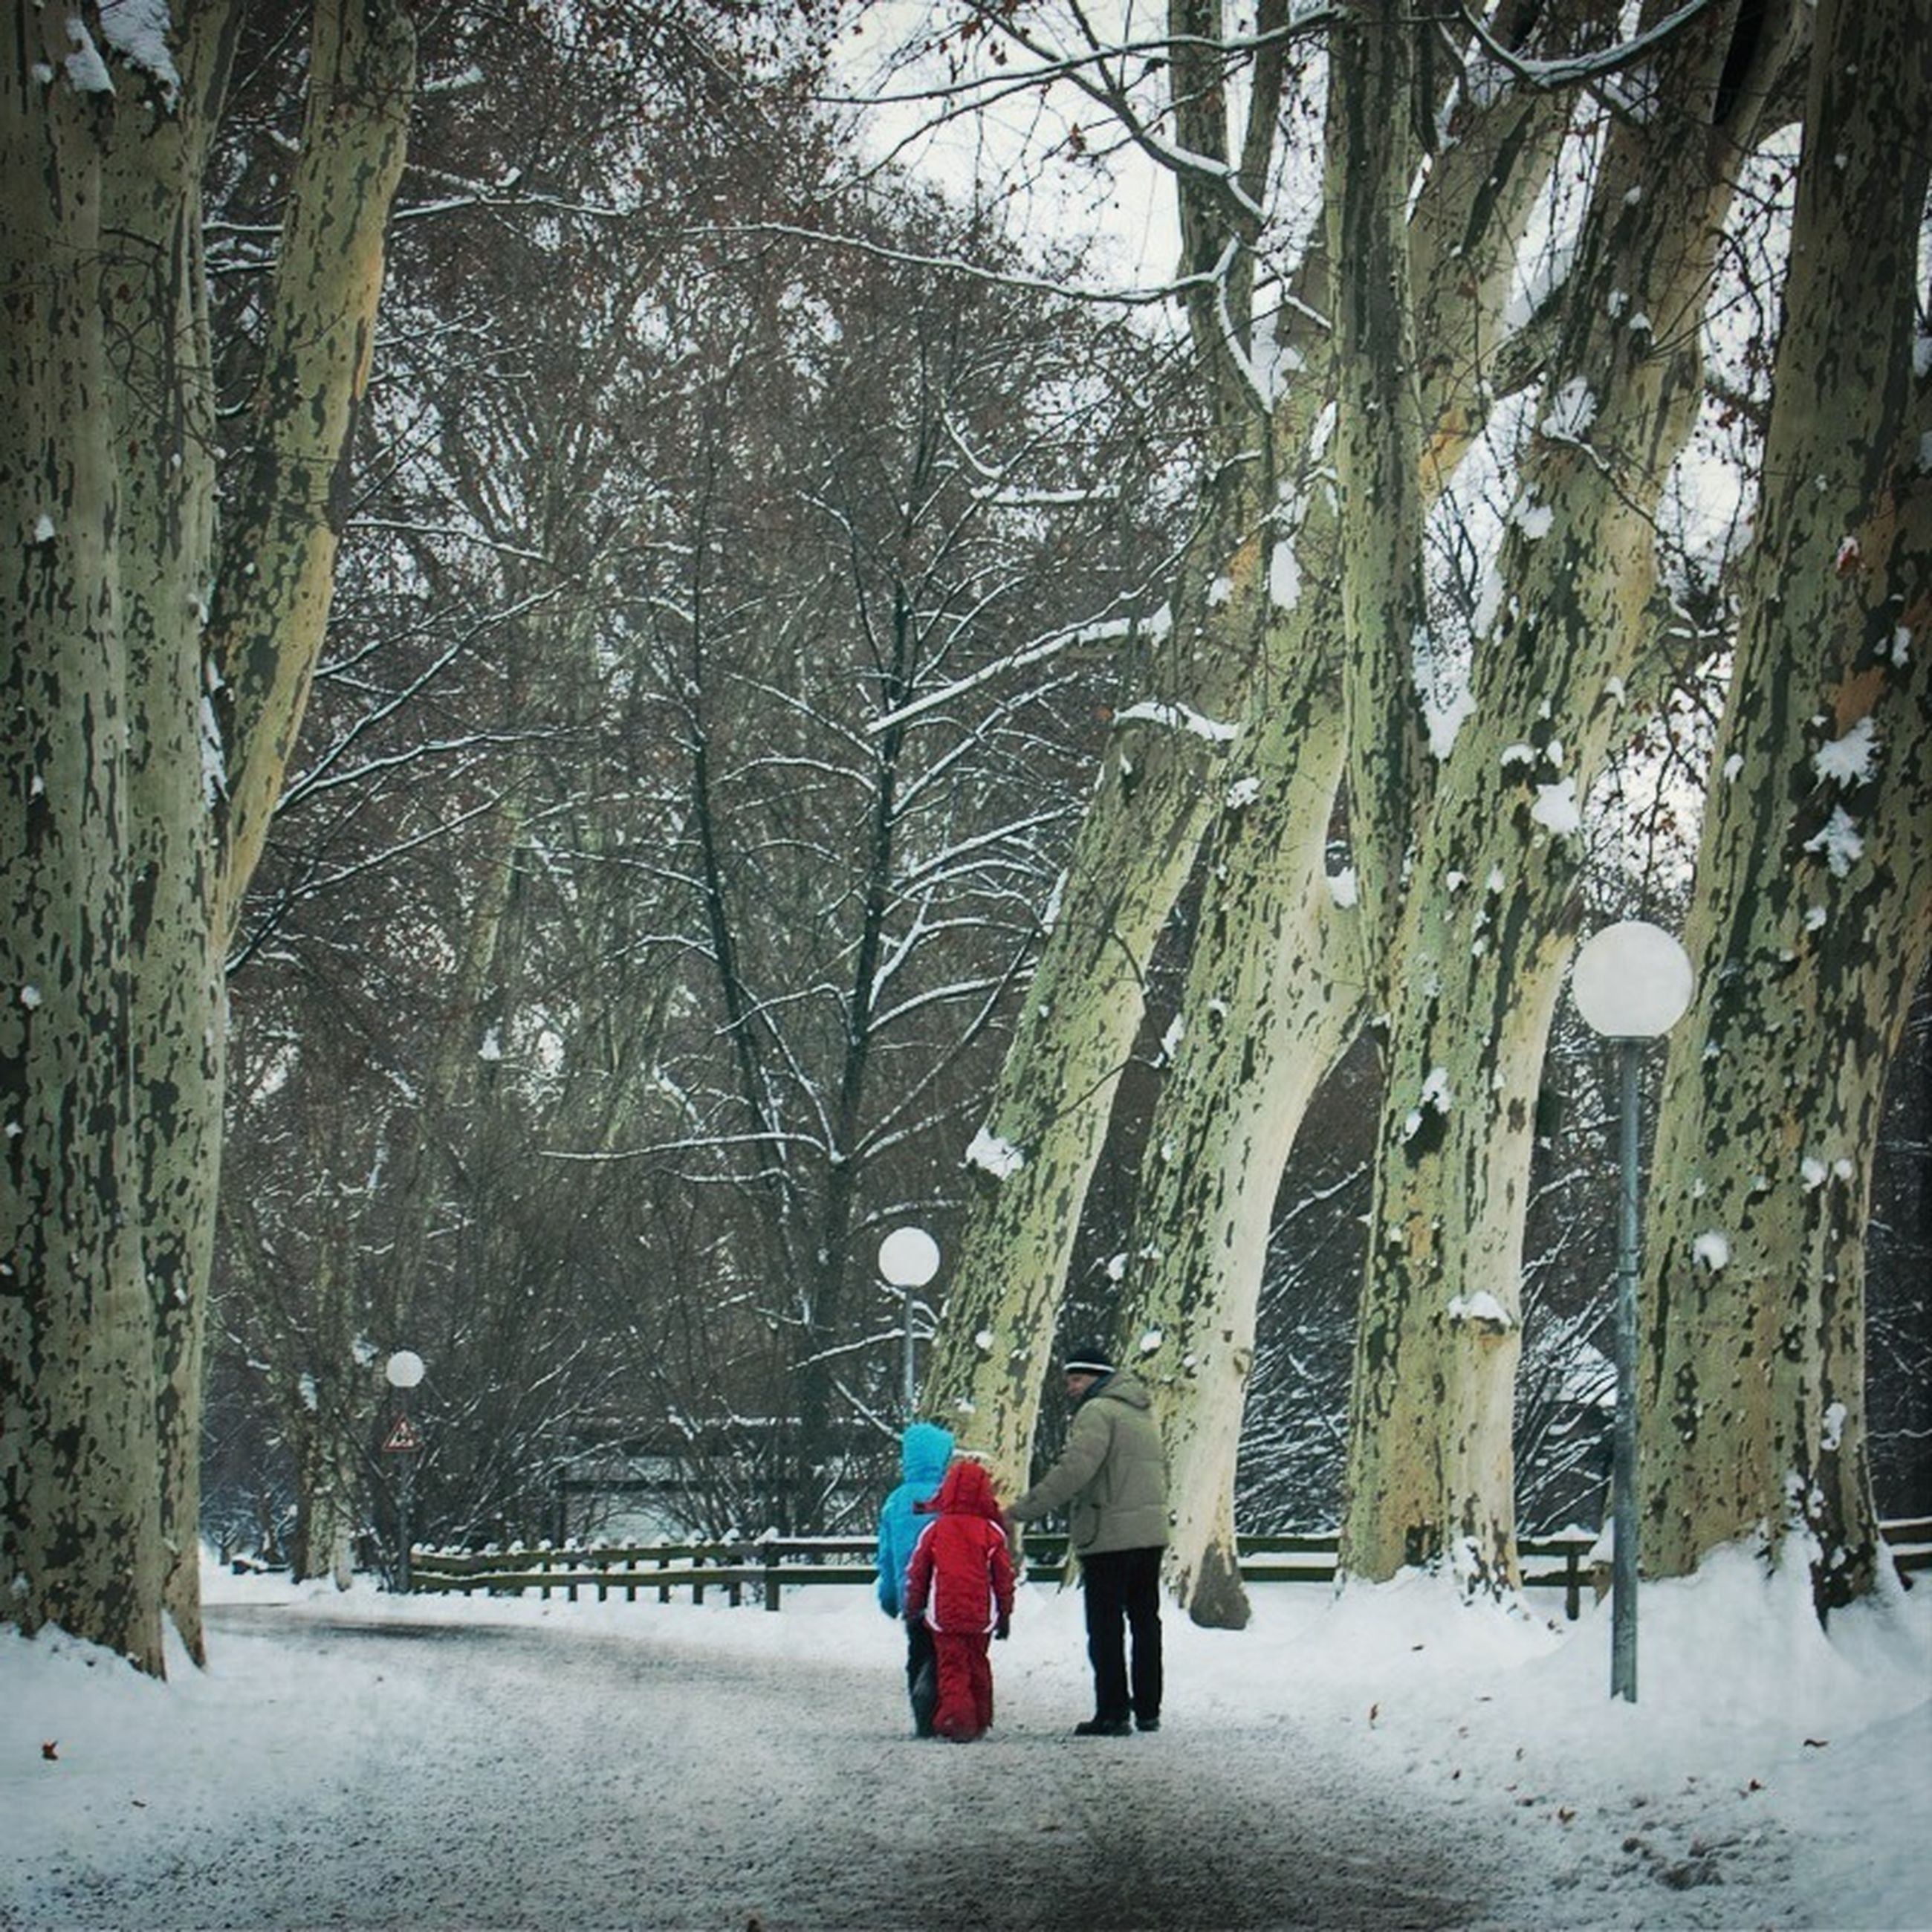 snow, winter, cold temperature, season, weather, tree, covering, bare tree, frozen, white color, covered, the way forward, tree trunk, nature, branch, street, road, snowing, outdoors, snow covered